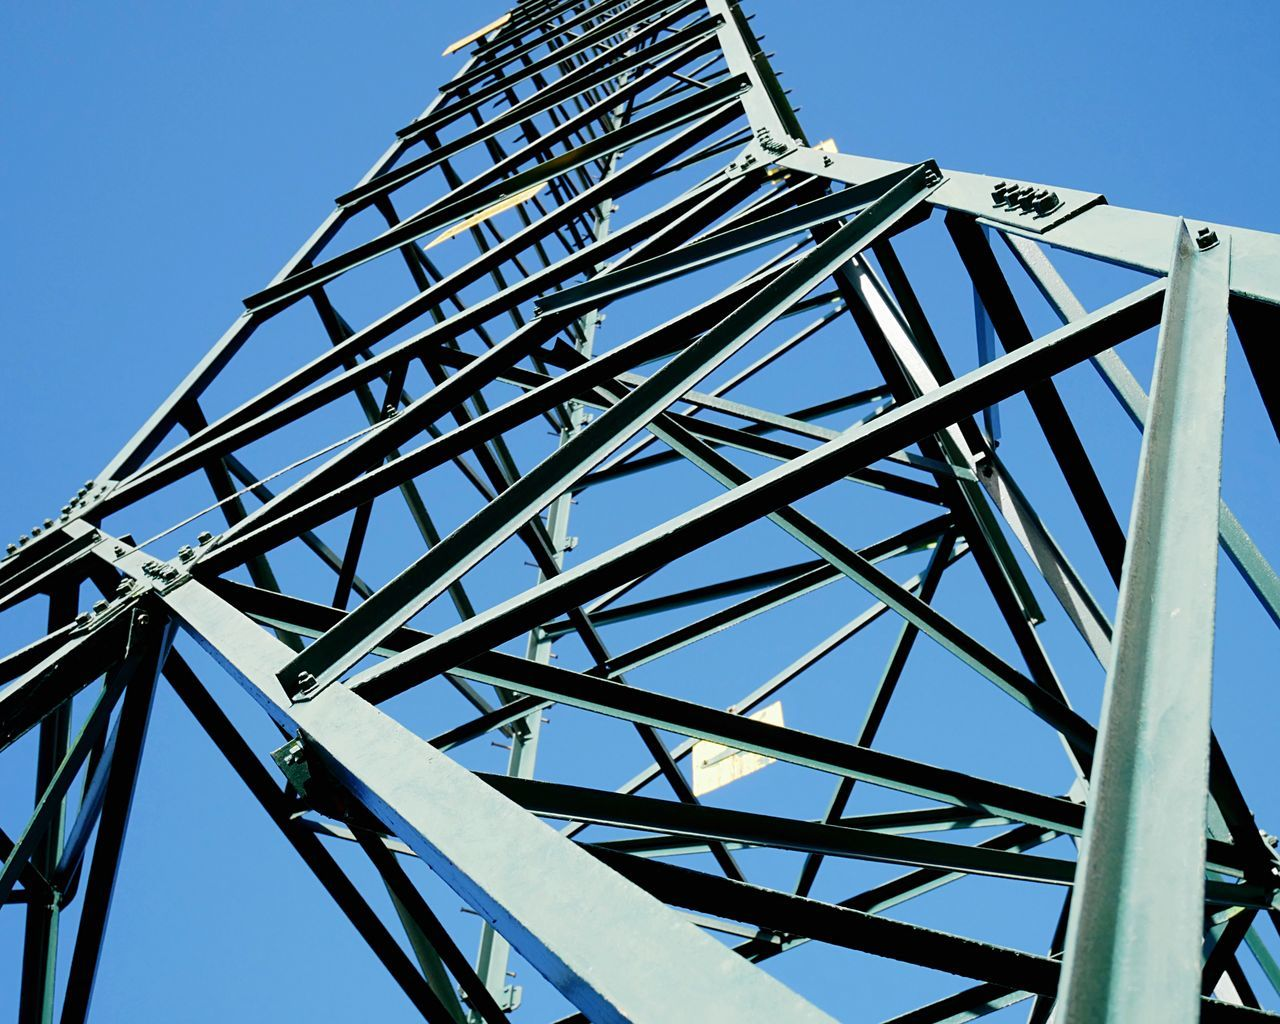 Pylon structure. Low Angle View Architecture Built Structure Clear Sky Sky Day Electricity Pylon Outdoors Green Color Environment Umwelt Environmental Safety Metal Volt Cable Watt Tower Technology Close-up Background Bolts